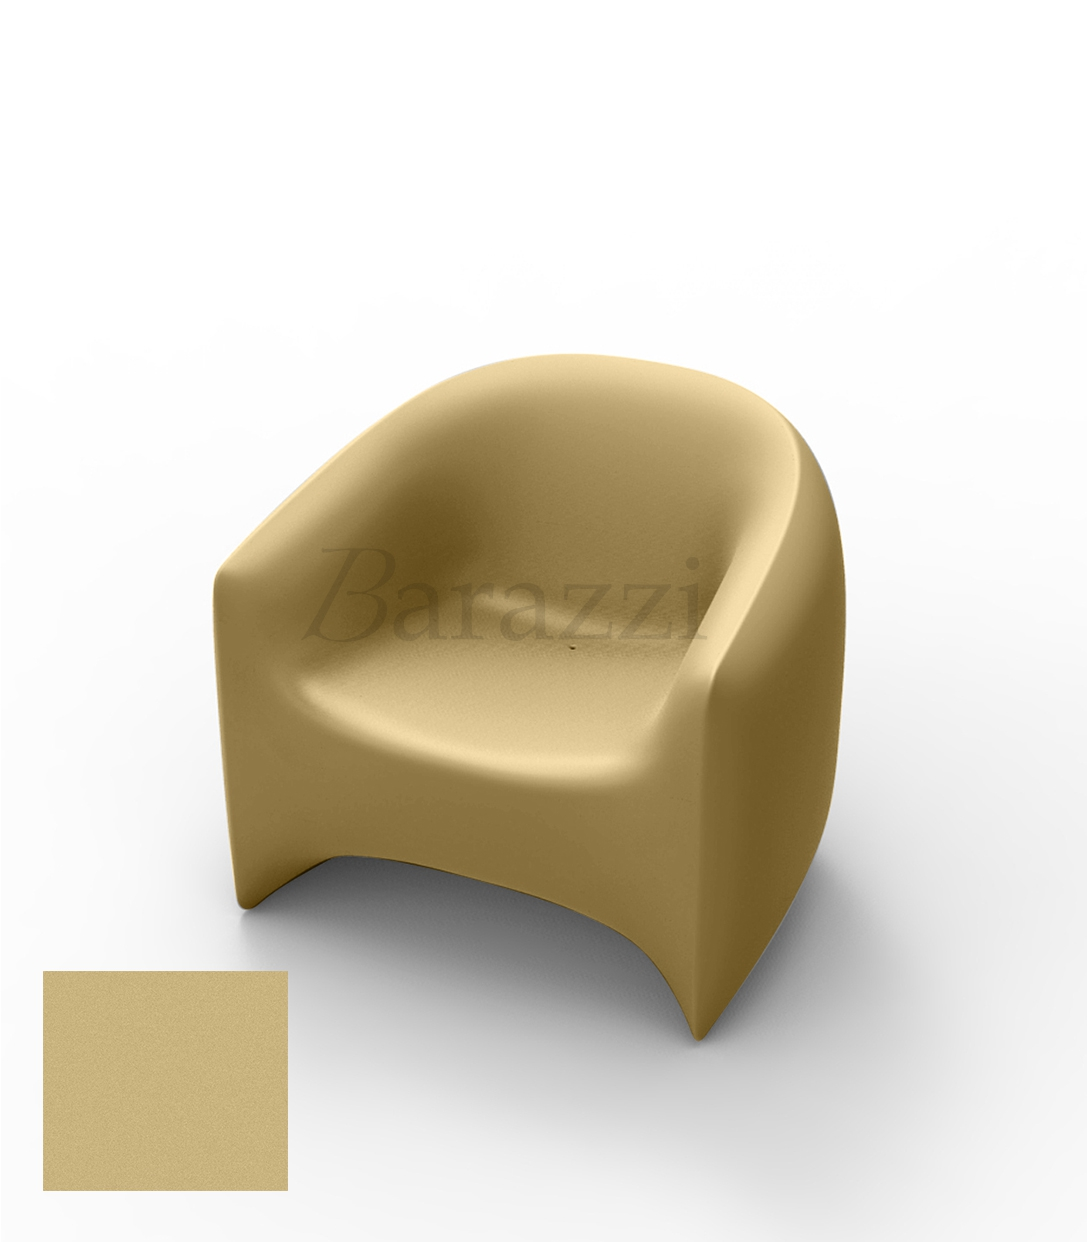 Blow Armchair Outdoor Garden And Terrace Lounge Chair With